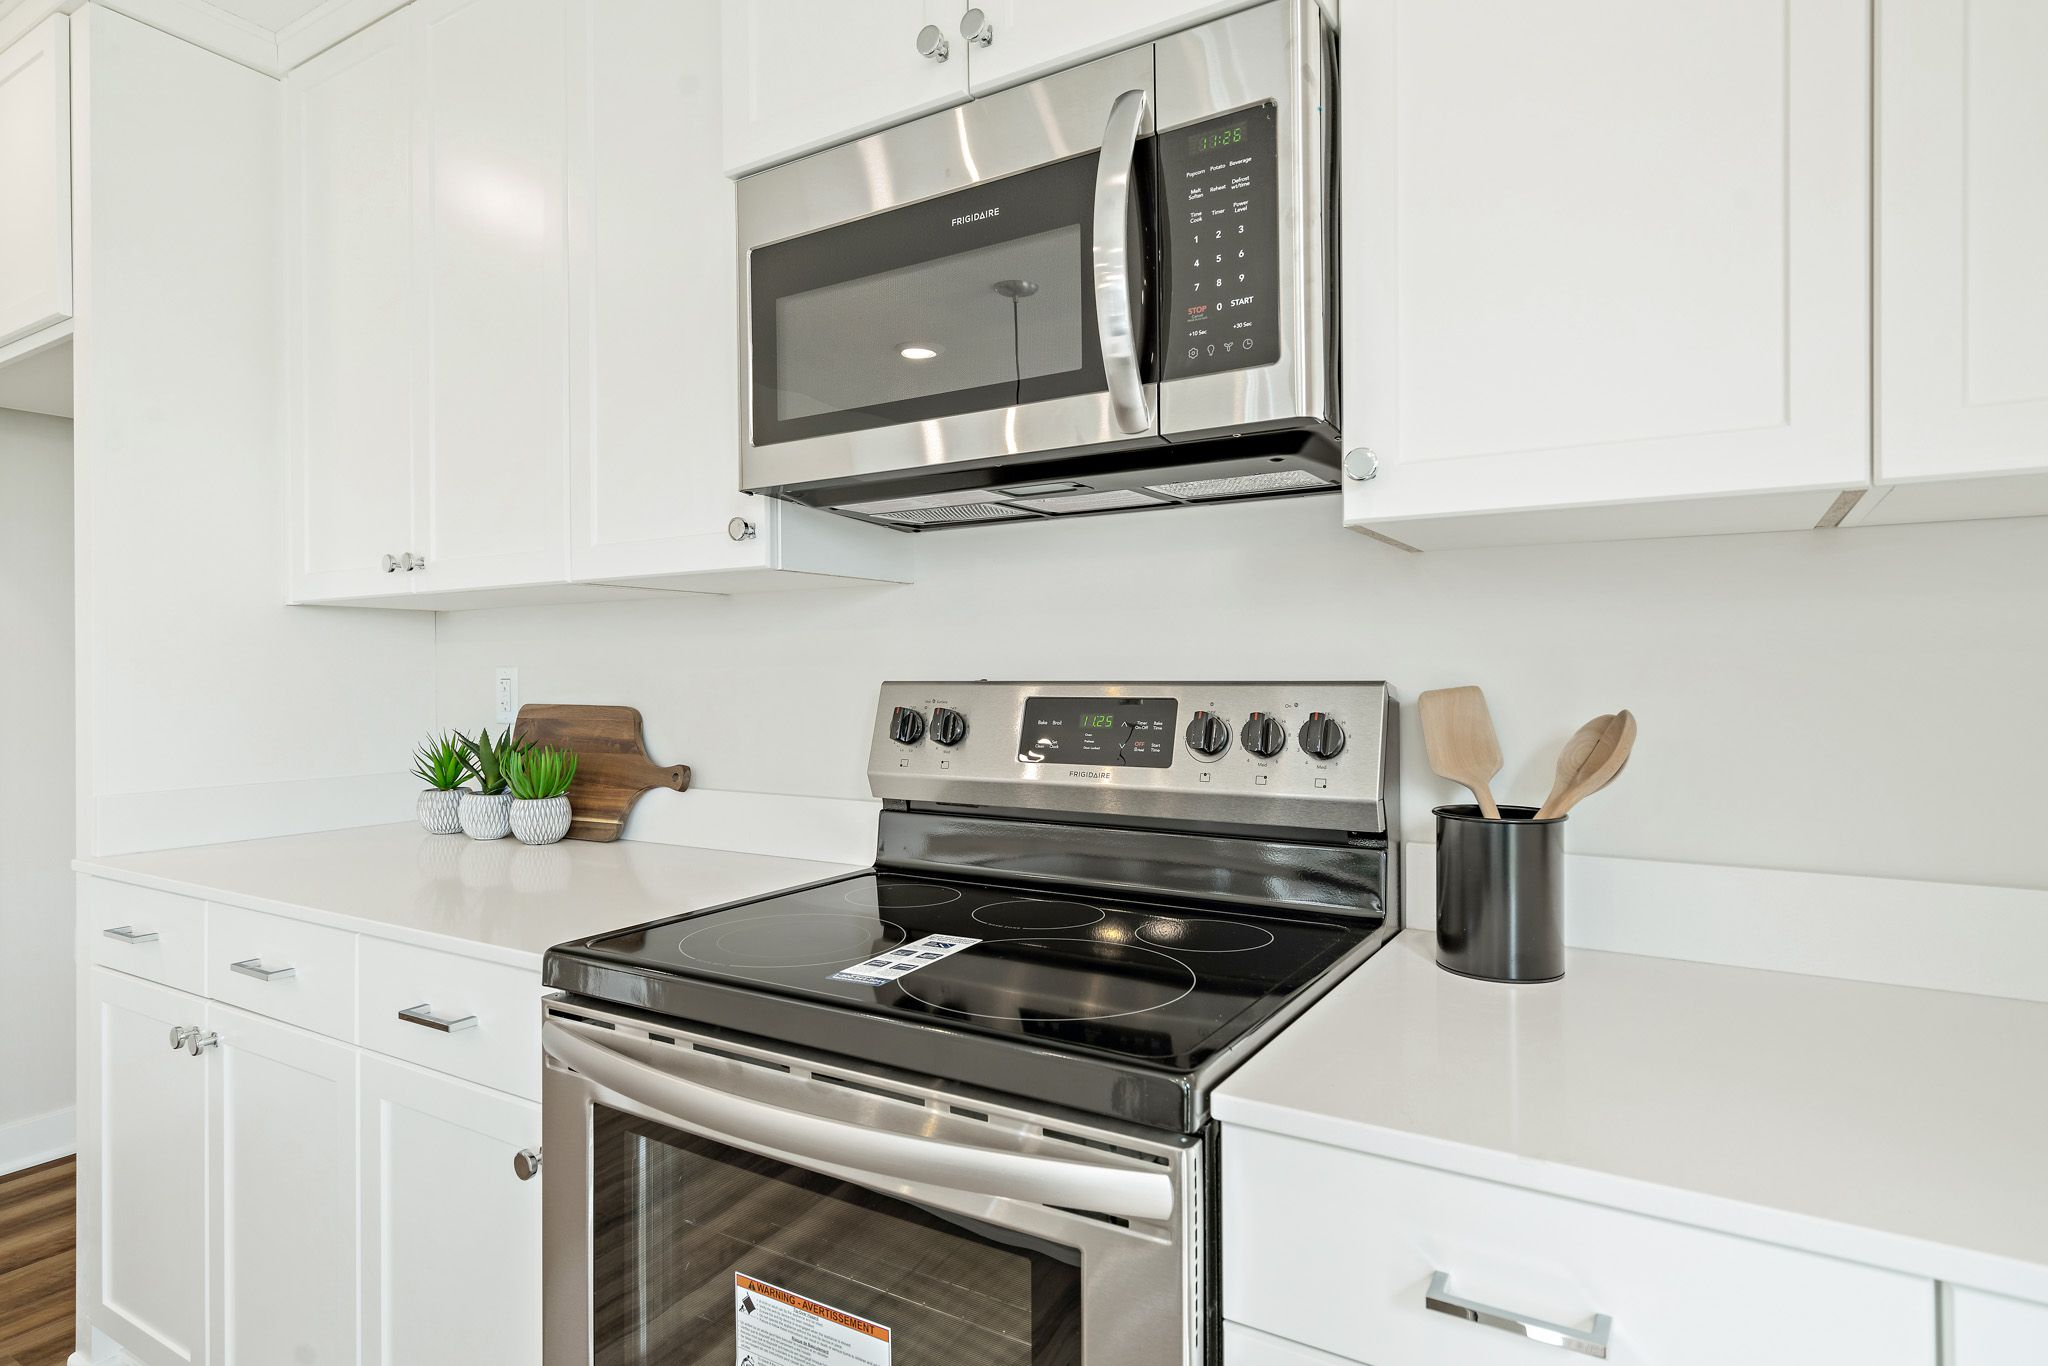 Kitchen featured in the indigo By clover & hive in Kansas City, MO